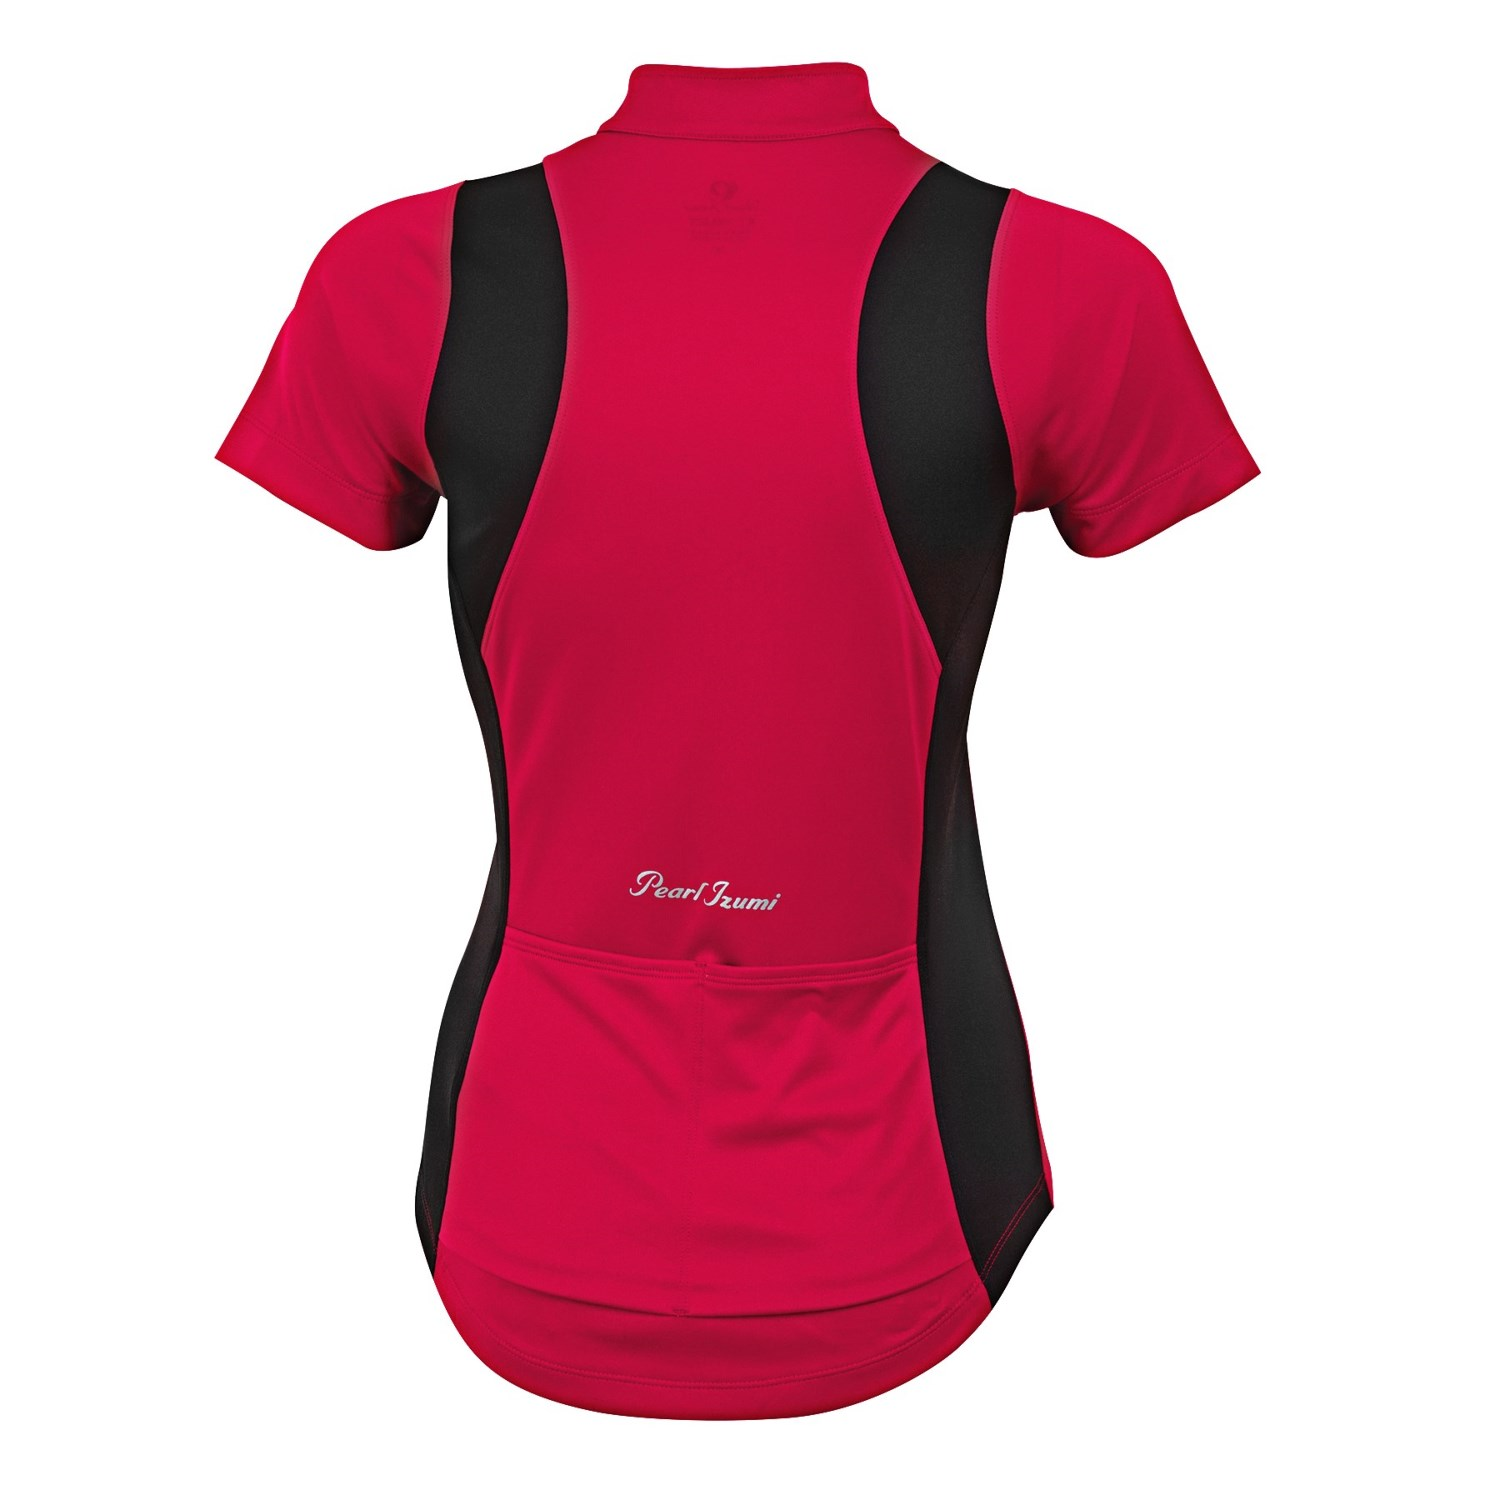 Pearl izumi select cycling jersey for women 7996j save 32 for Pearl izumi cycling shirt